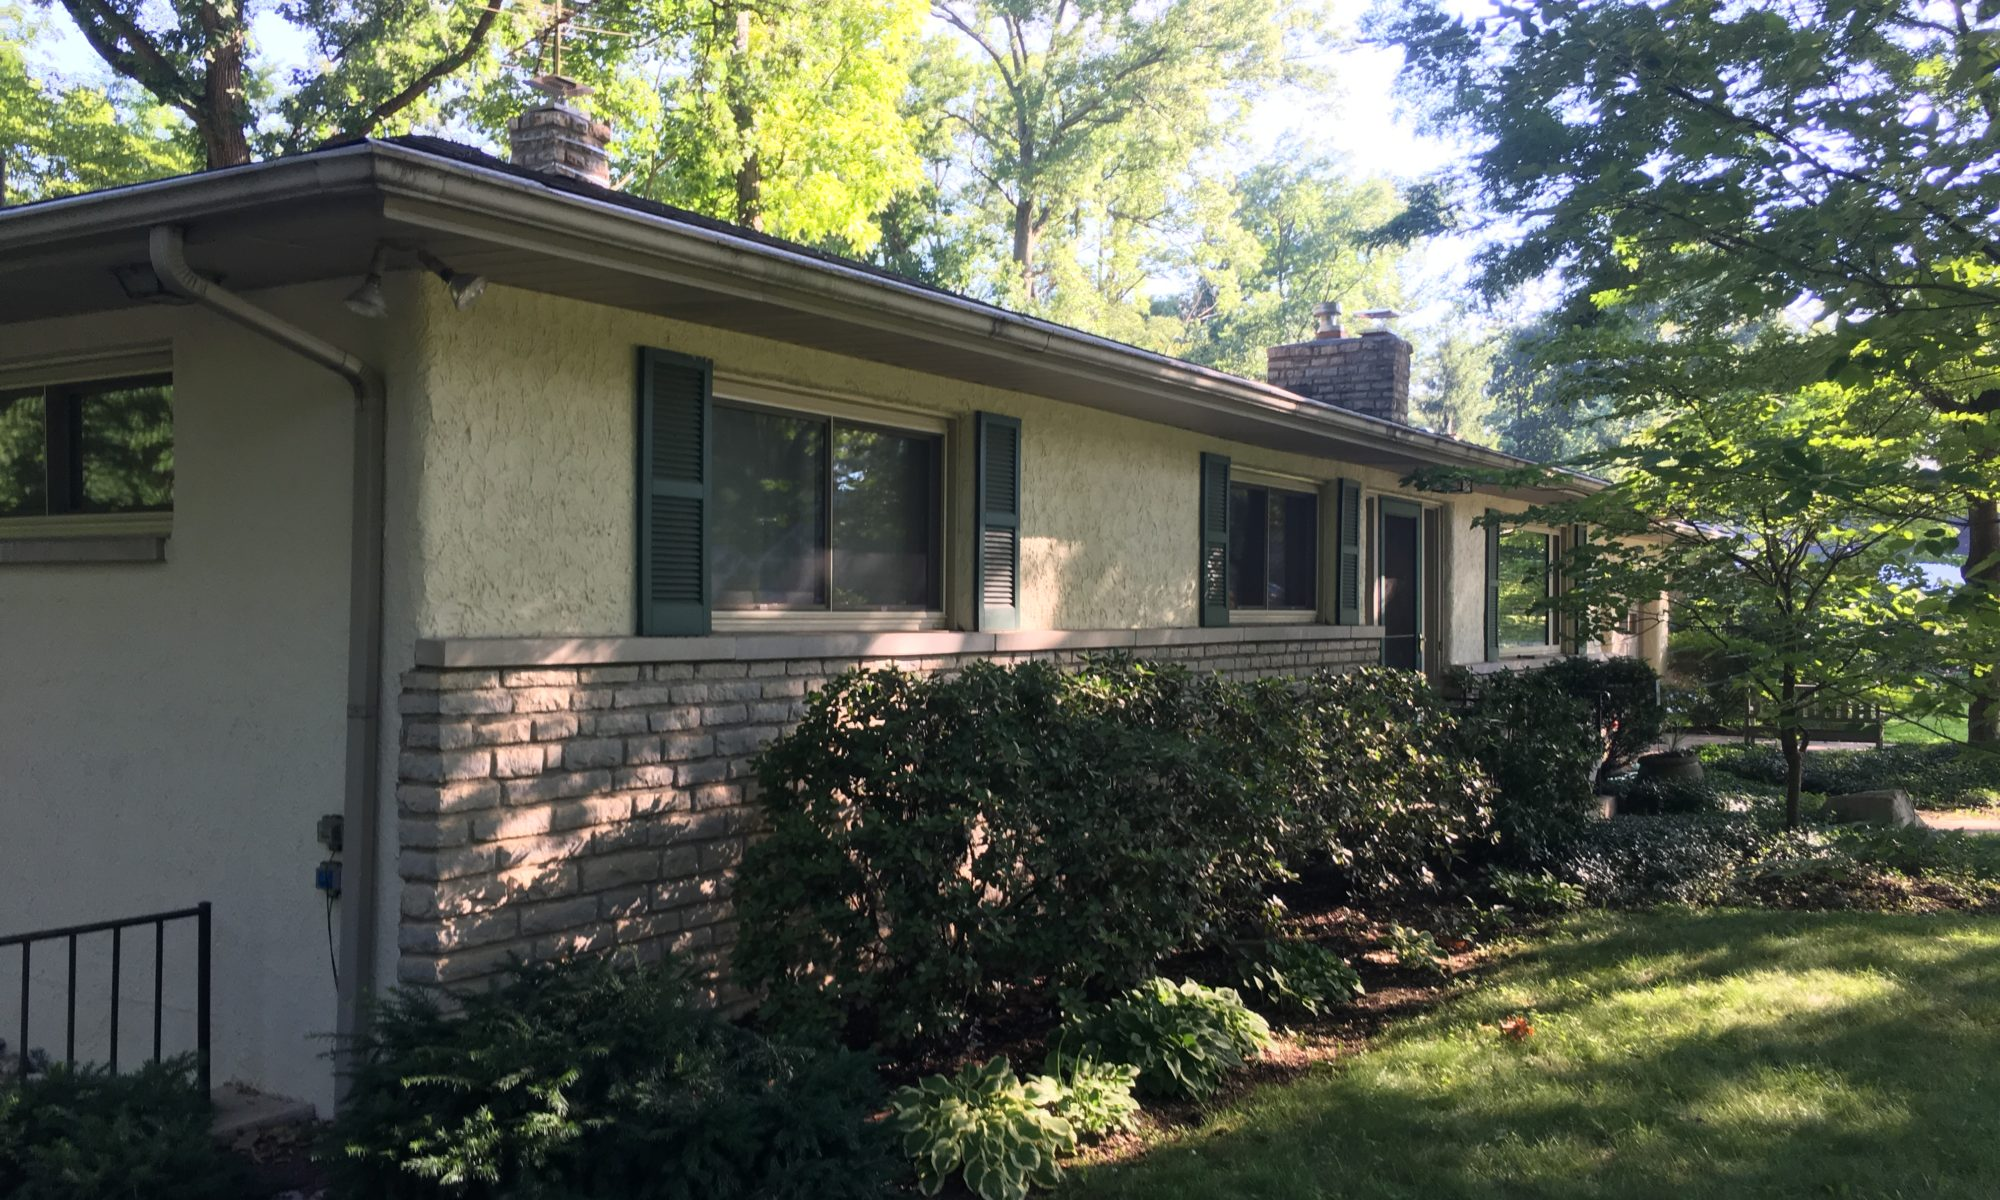 microscreen gutter guards installed on a home in minerva park, ohio